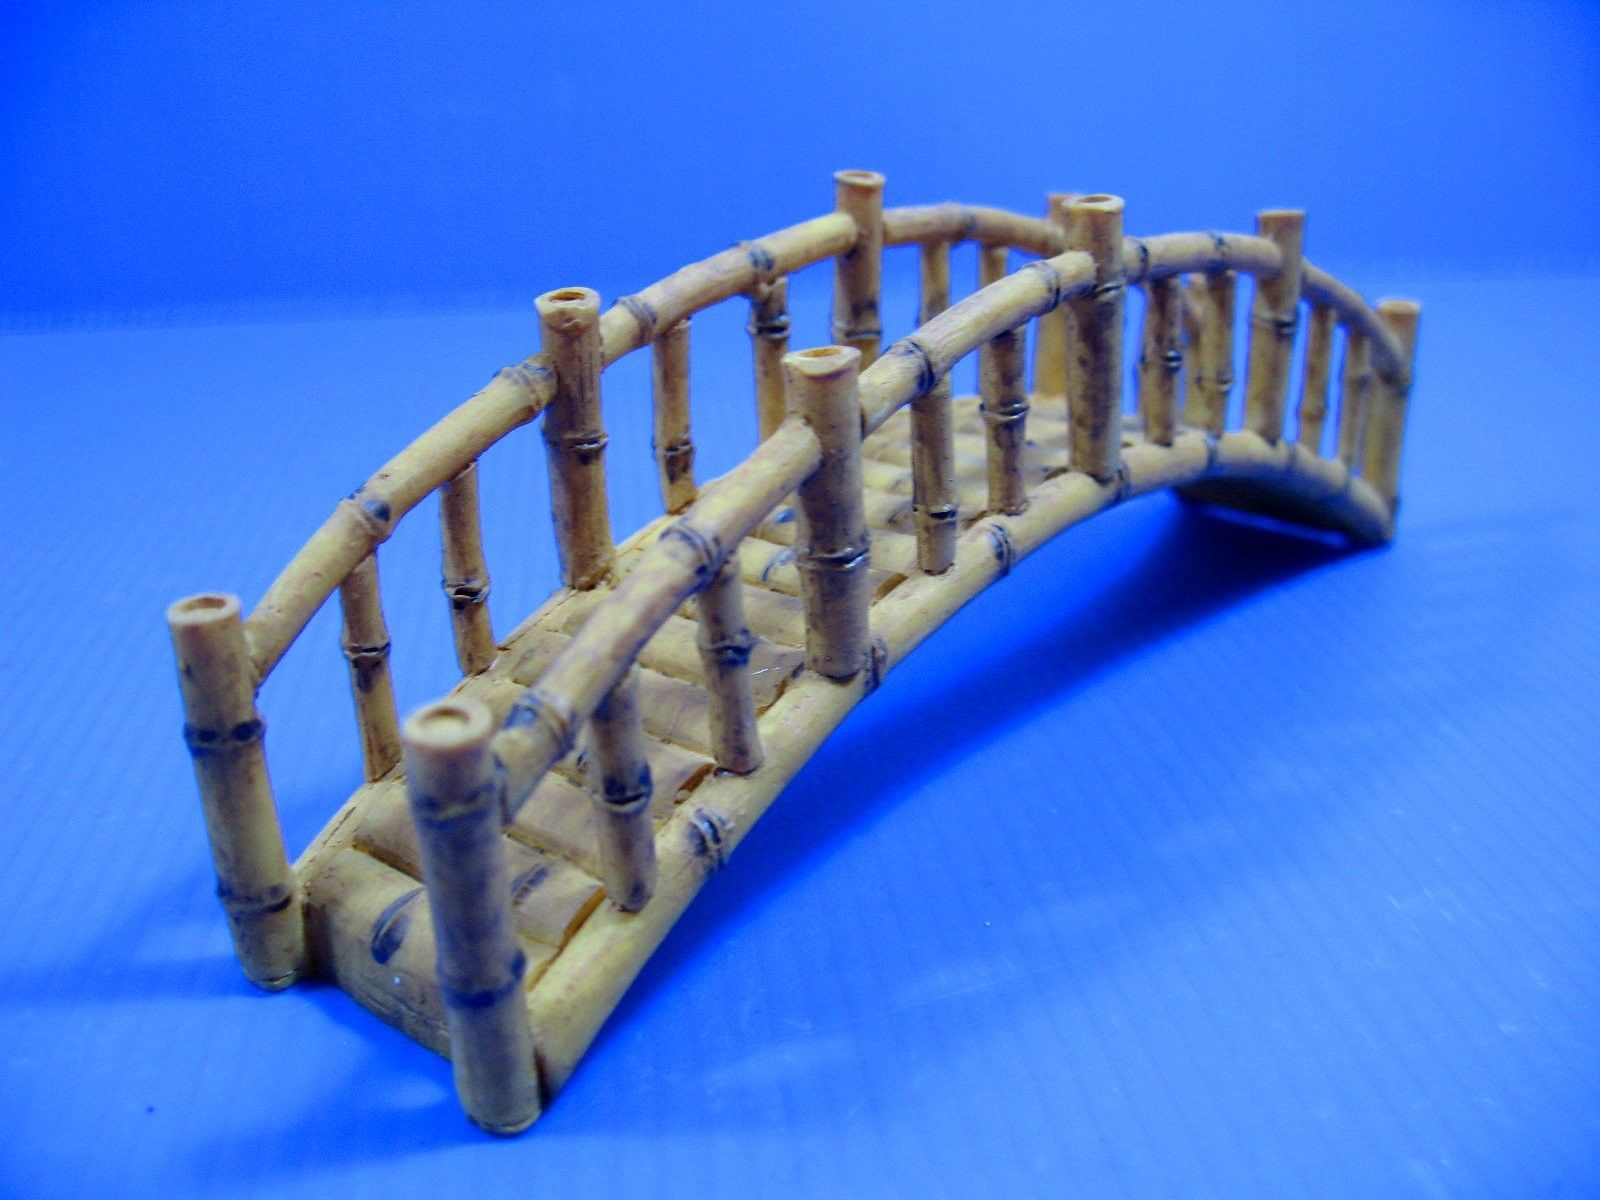 Bamboo Bridge Aquarium Ornament Decoration fish tank by